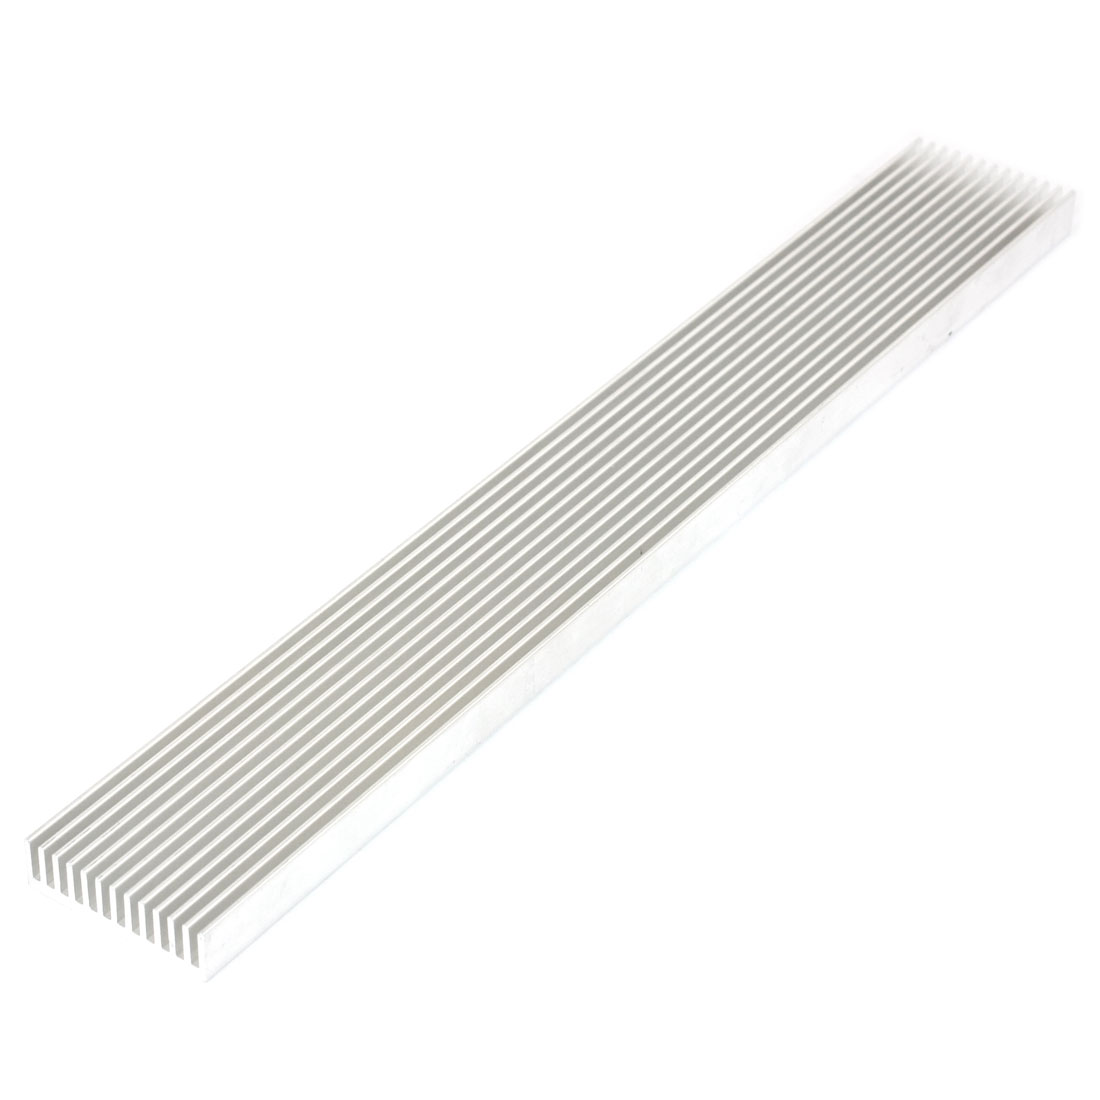 Silver White 300mmx40mmx12mm LED Heat Sink Aluminum Cooling Fin